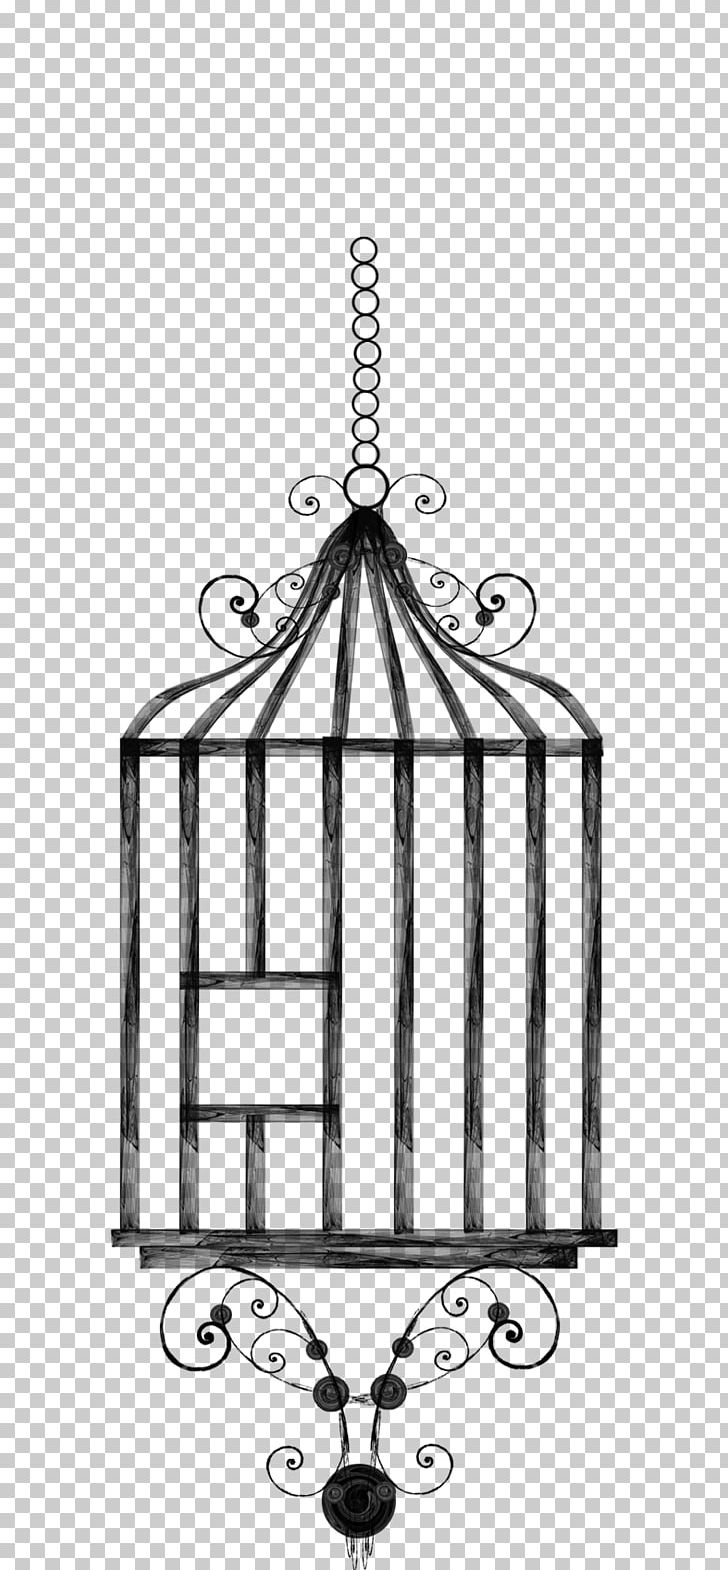 Birdcage Drawing Lovebird PNG, Clipart, Area, Art, Bird, Birdcage